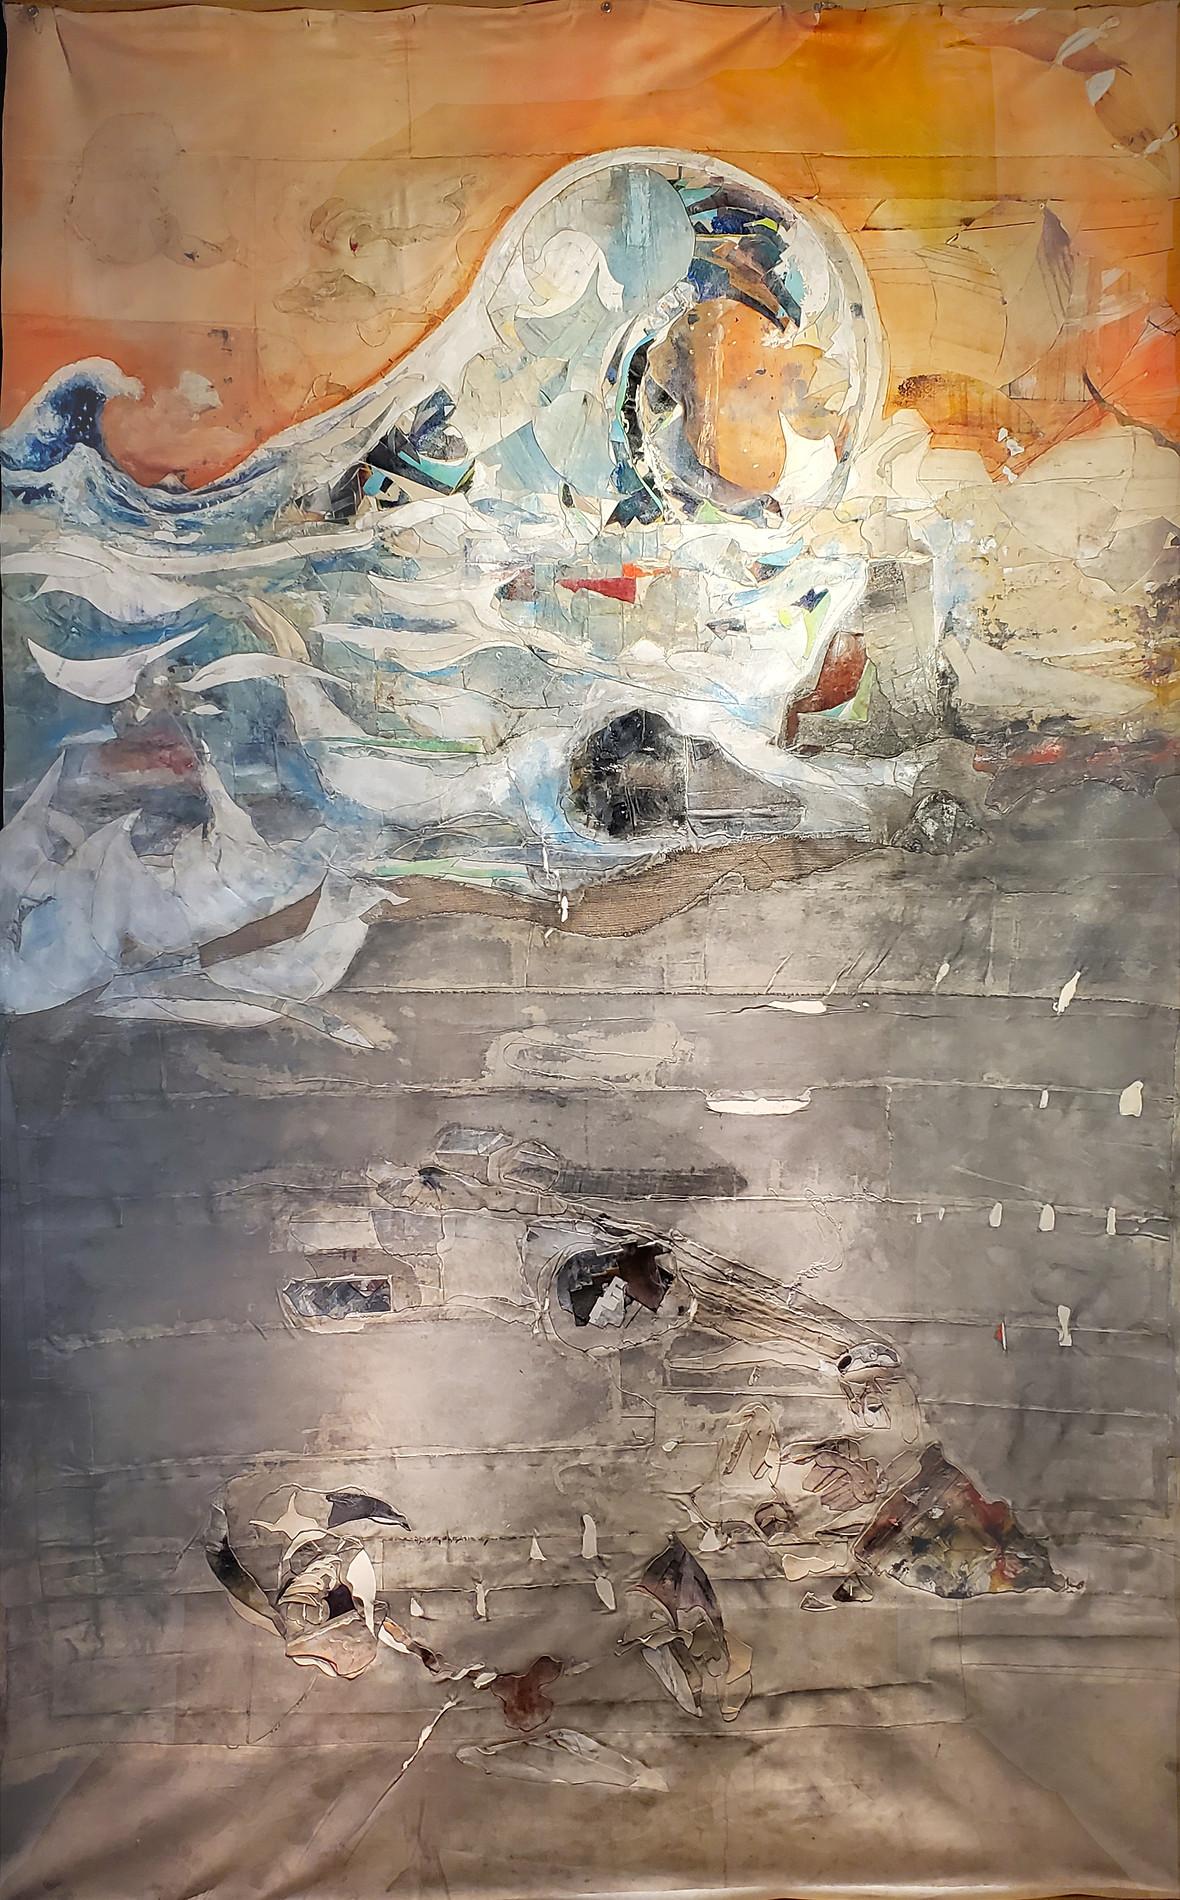 Waves & Bathers painted by Christopher Rodrigues. Painted in 2020. Acrylic & Canvas. 12 feet by 8 feet. The painting is that of white and blue waves, over an orange sky.